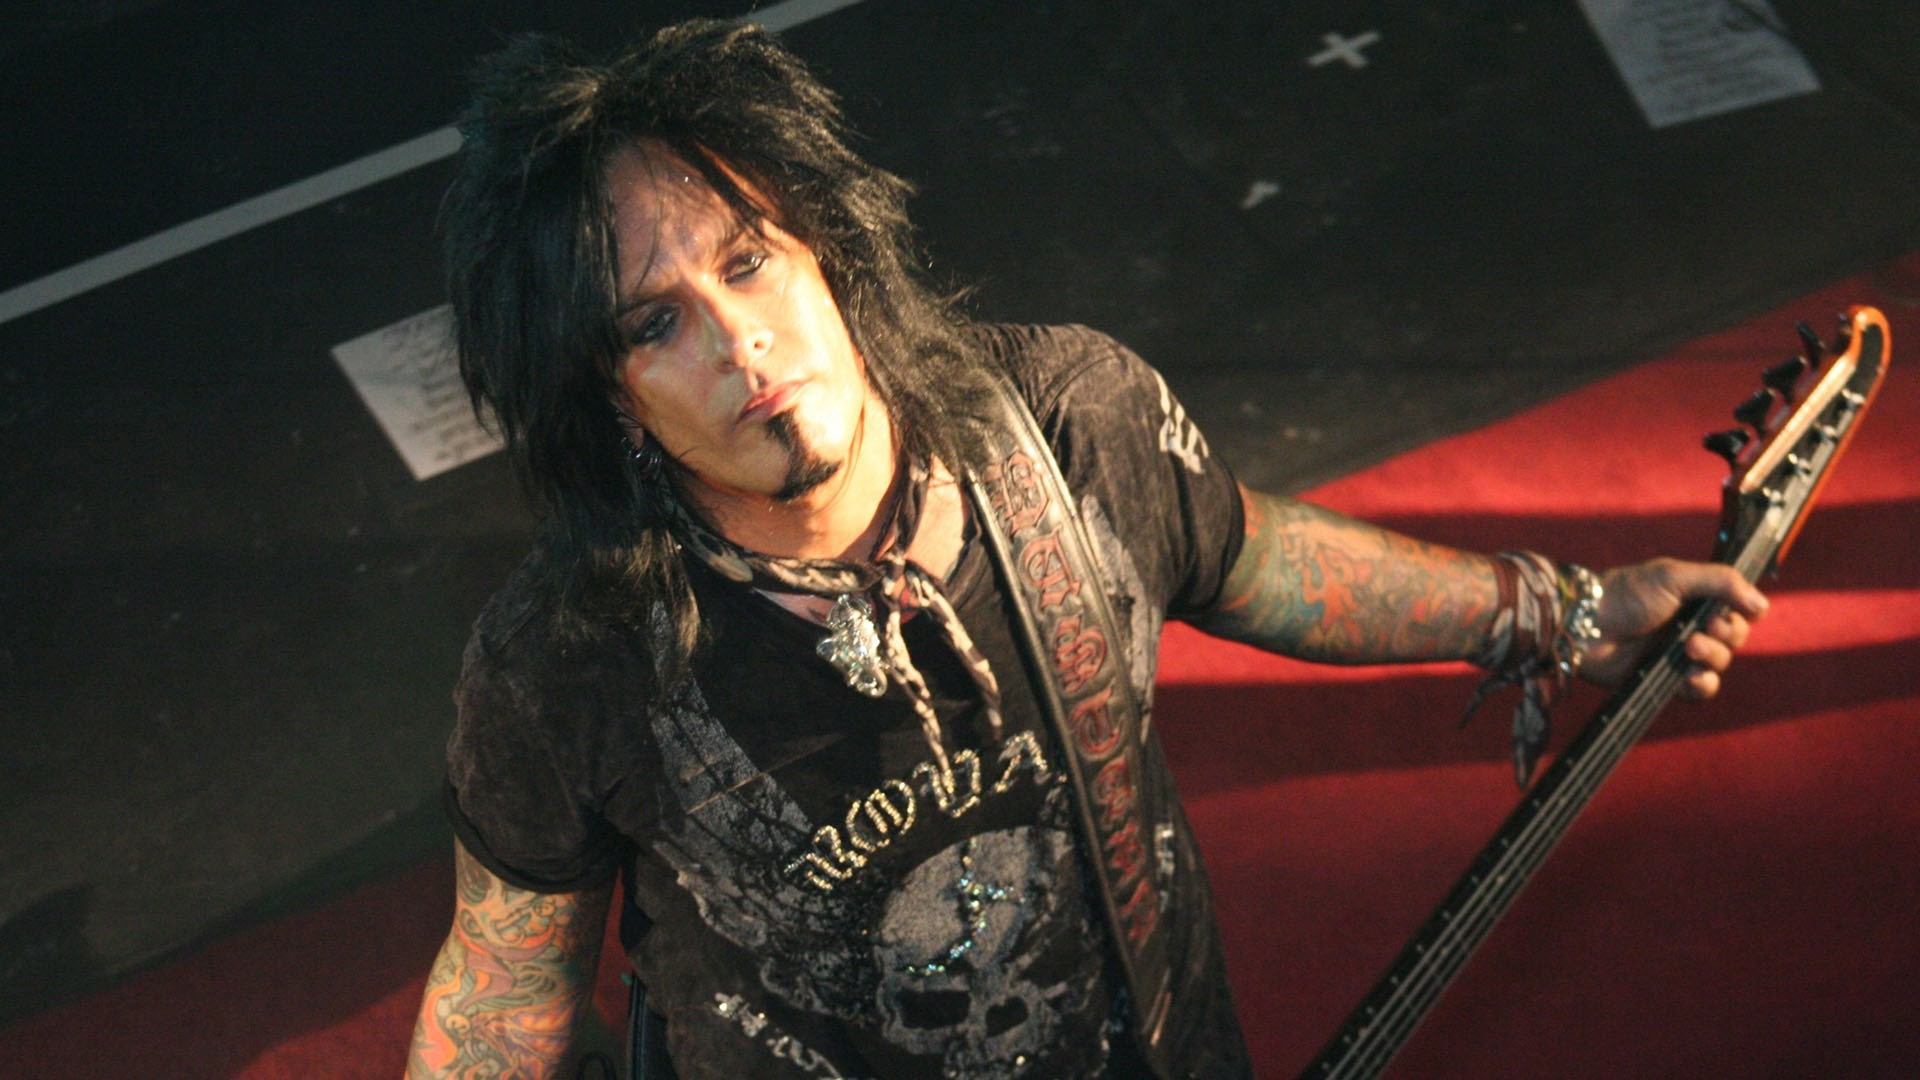 1920x1080 Looking At Sixx AM Tickets One Month Away From 2015 Tour